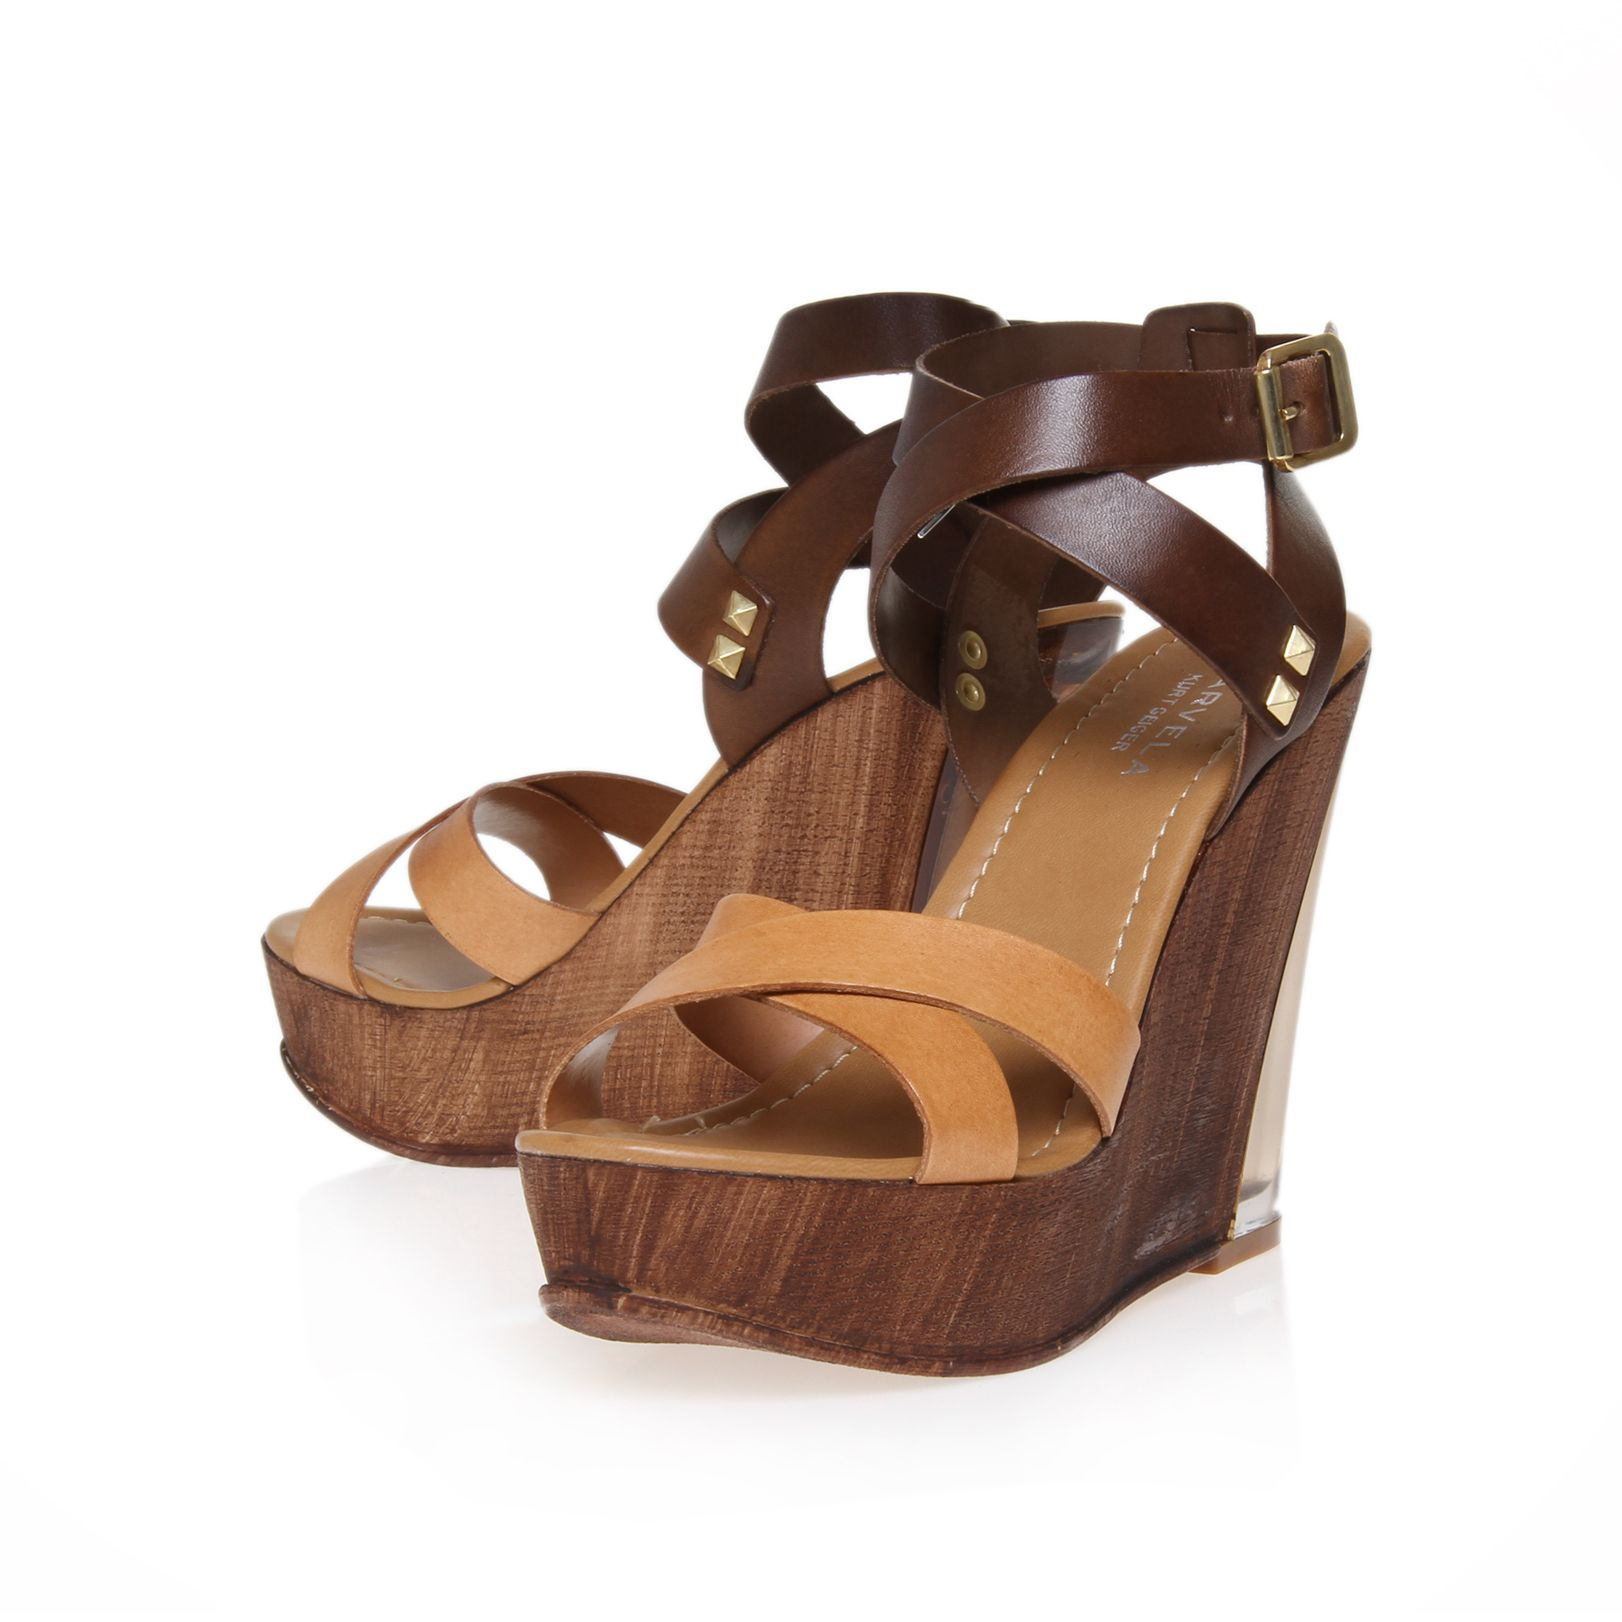 Koffee wedge sandals